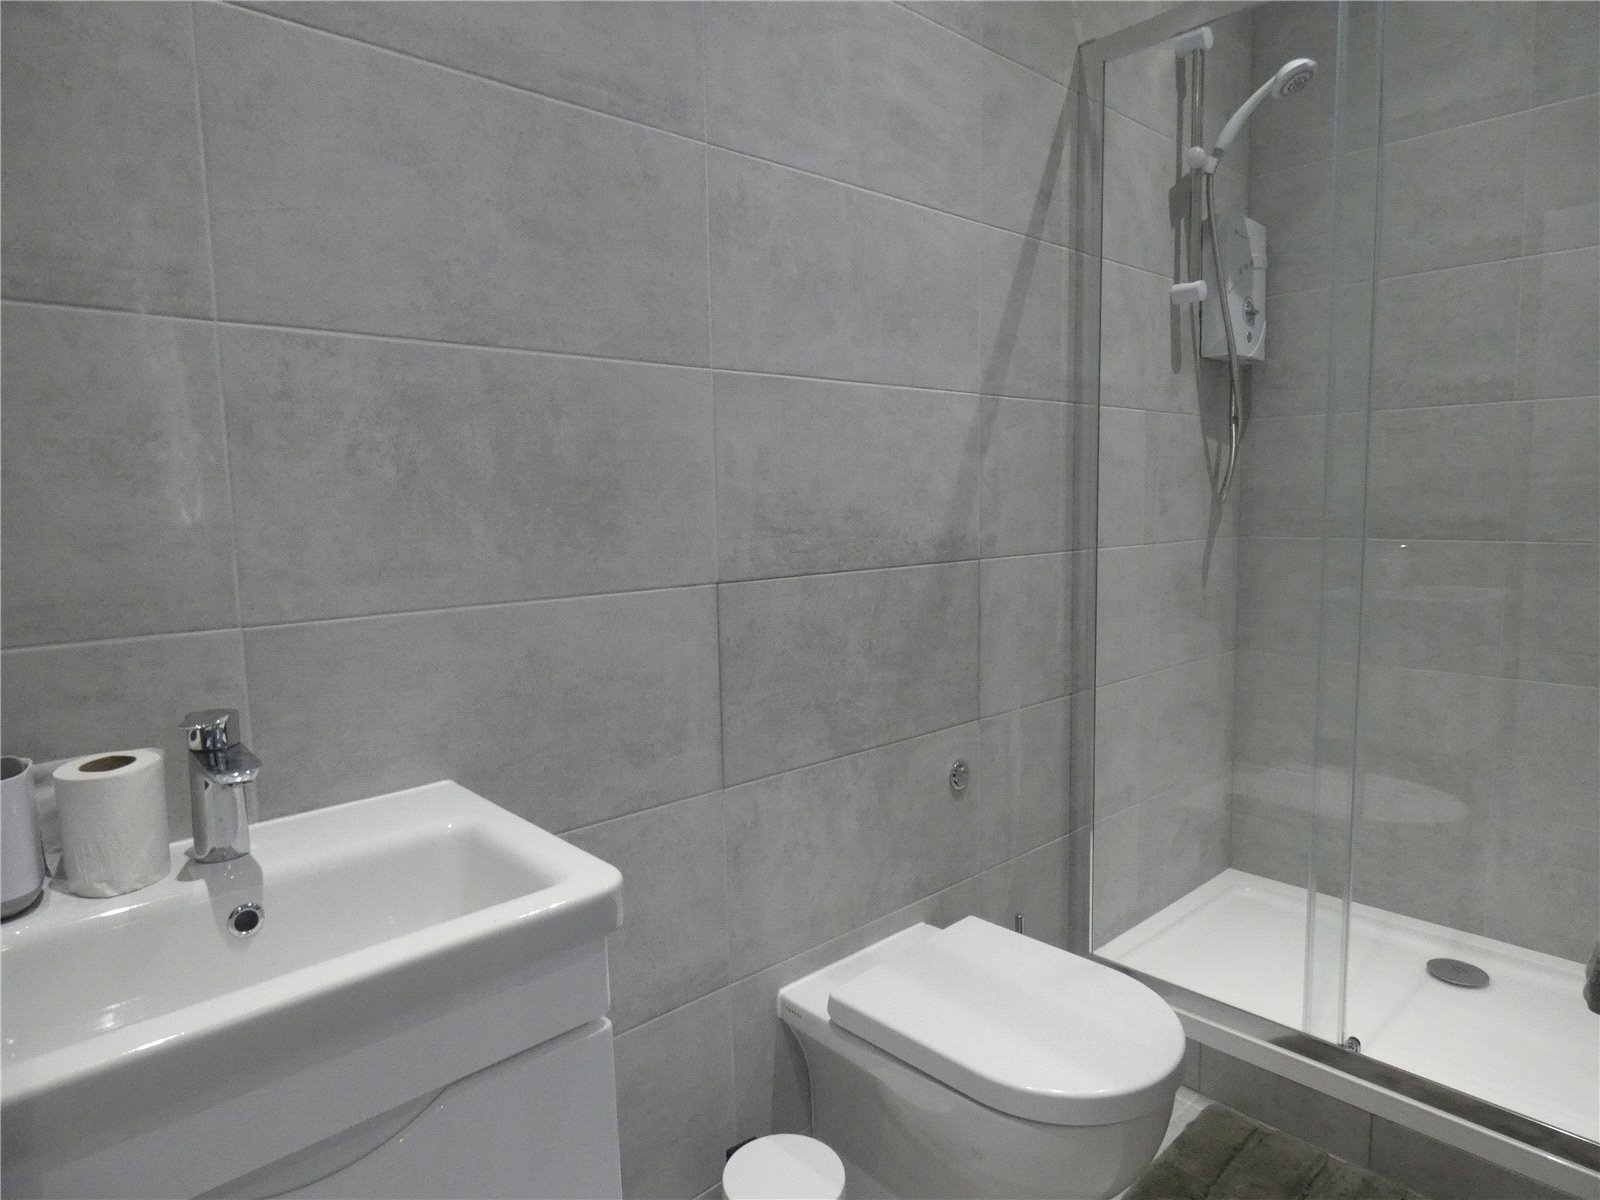 Apartment to rent in Whetstone, N20 9HW 3